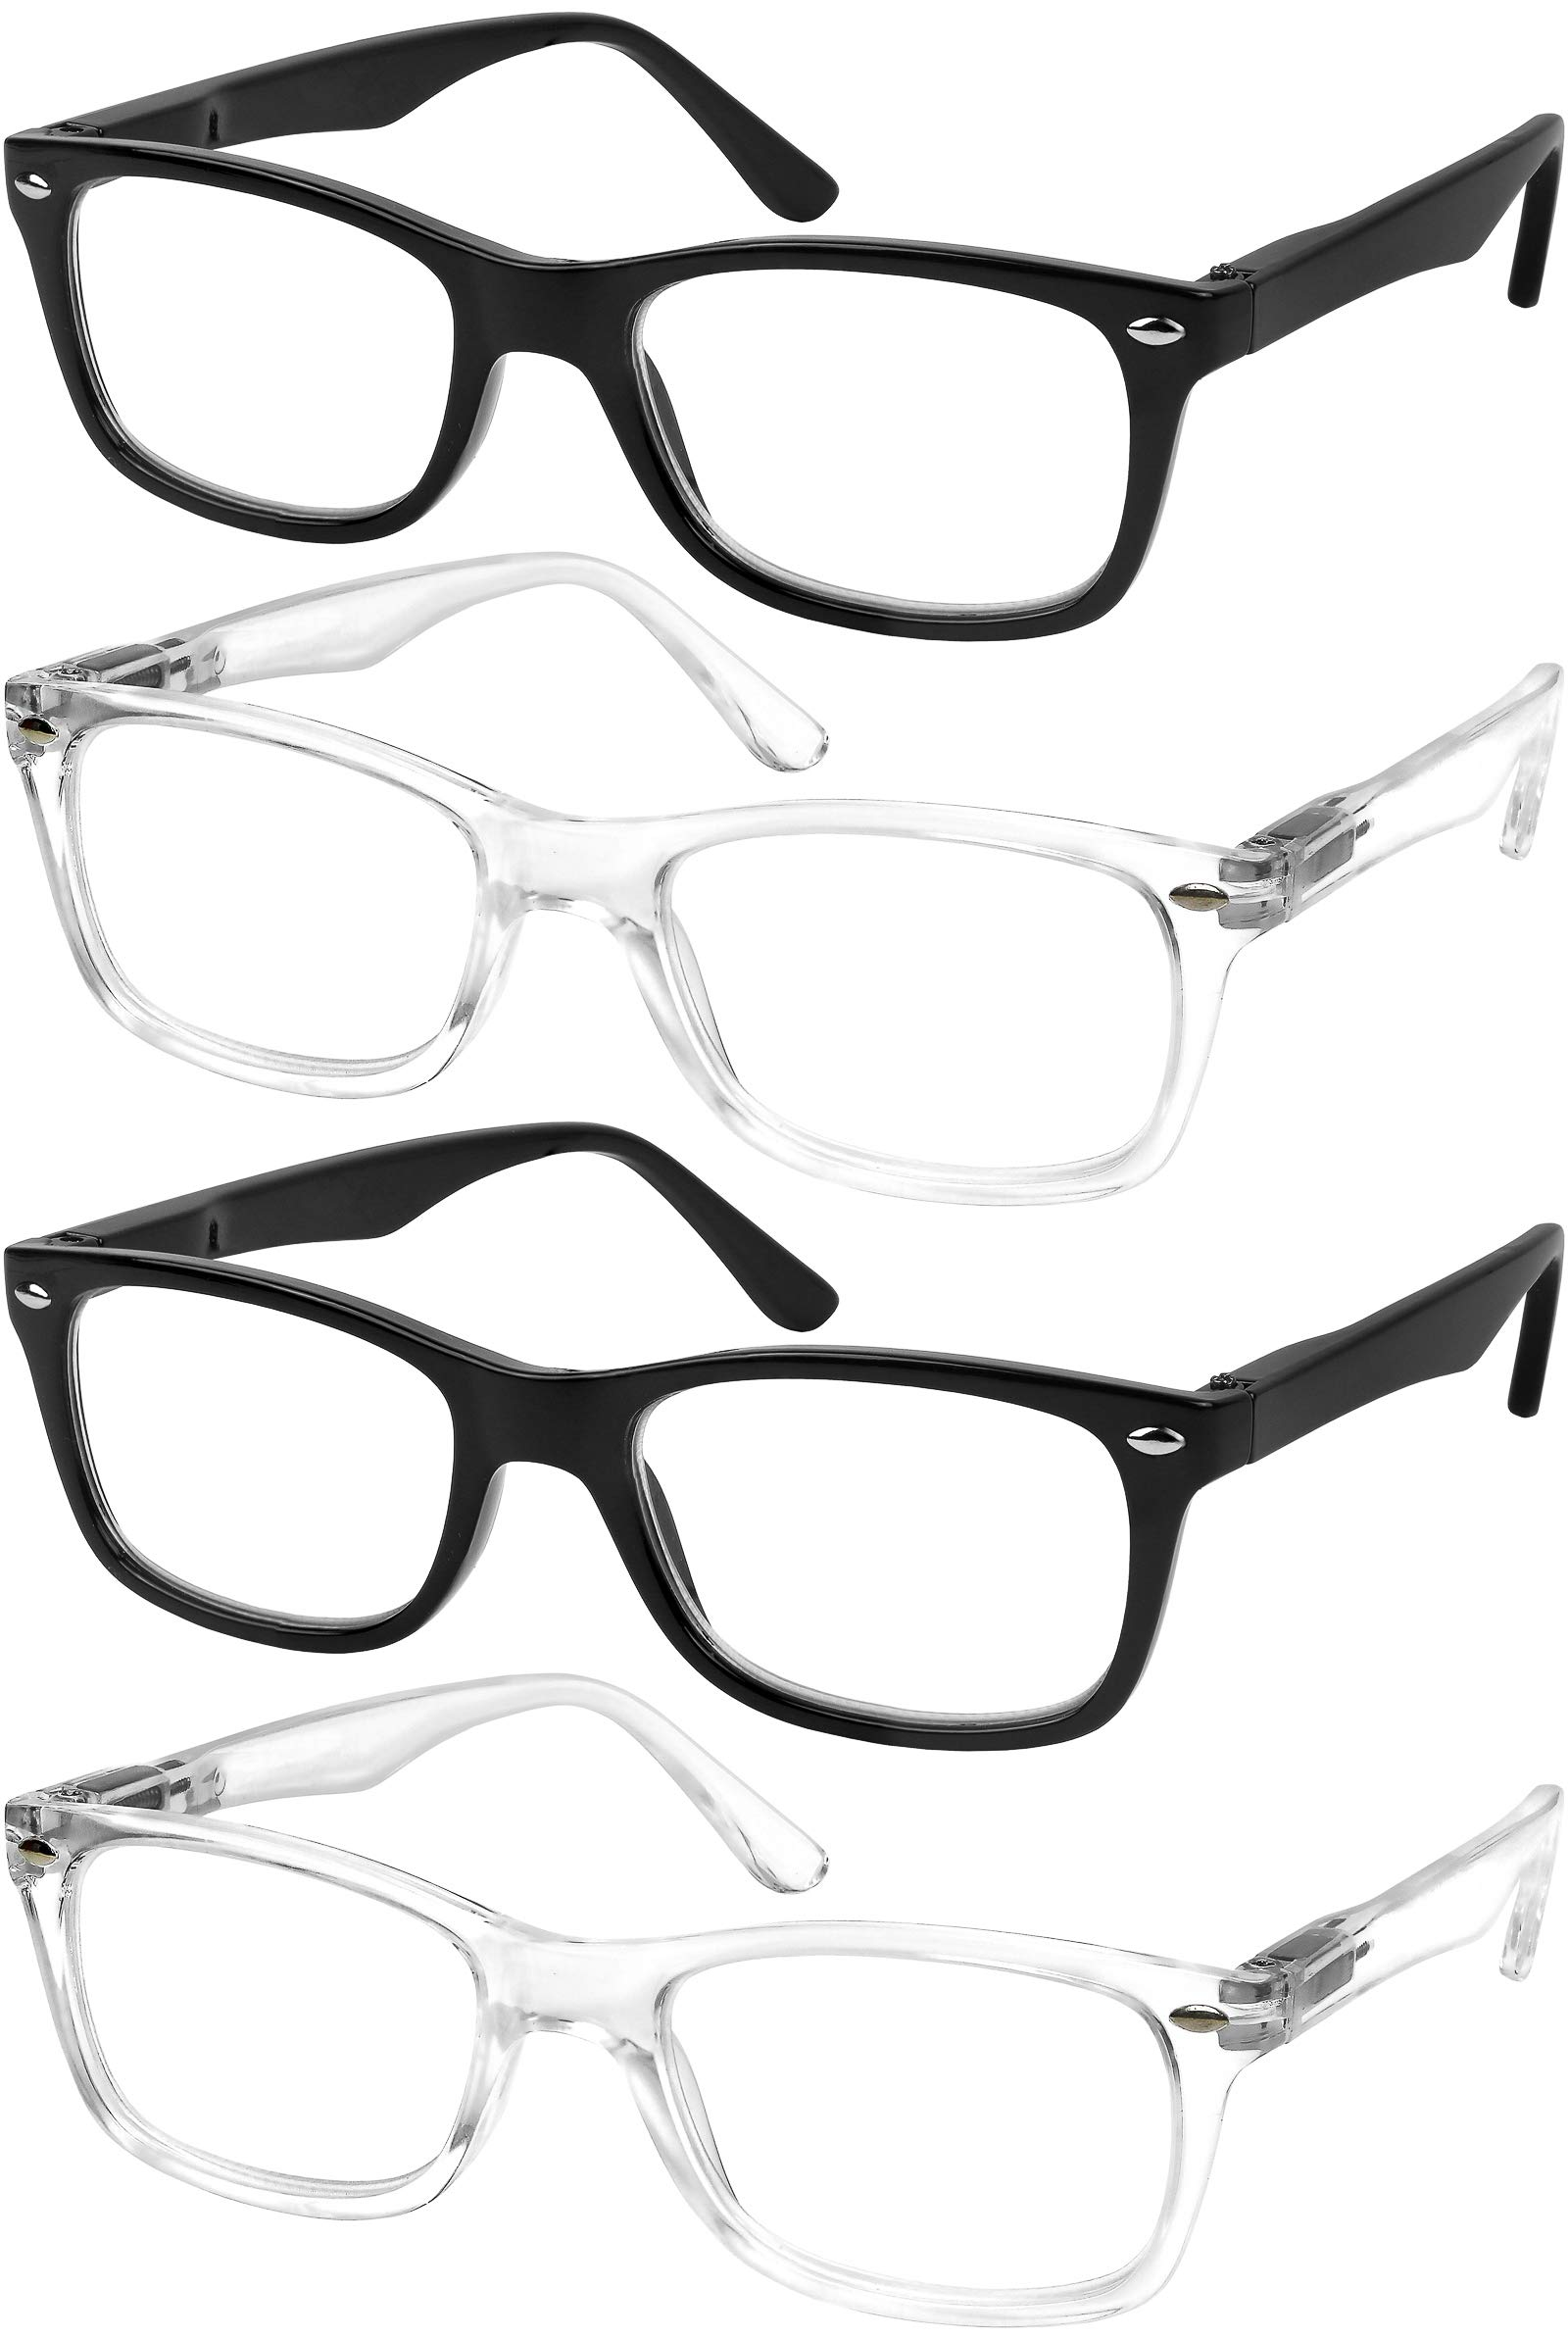 Reading Glasses Set of 4 Quality Readers Spring Hinge Glasses for Reading for Men and Women Set of 2 Black and 2 Clear +1.75